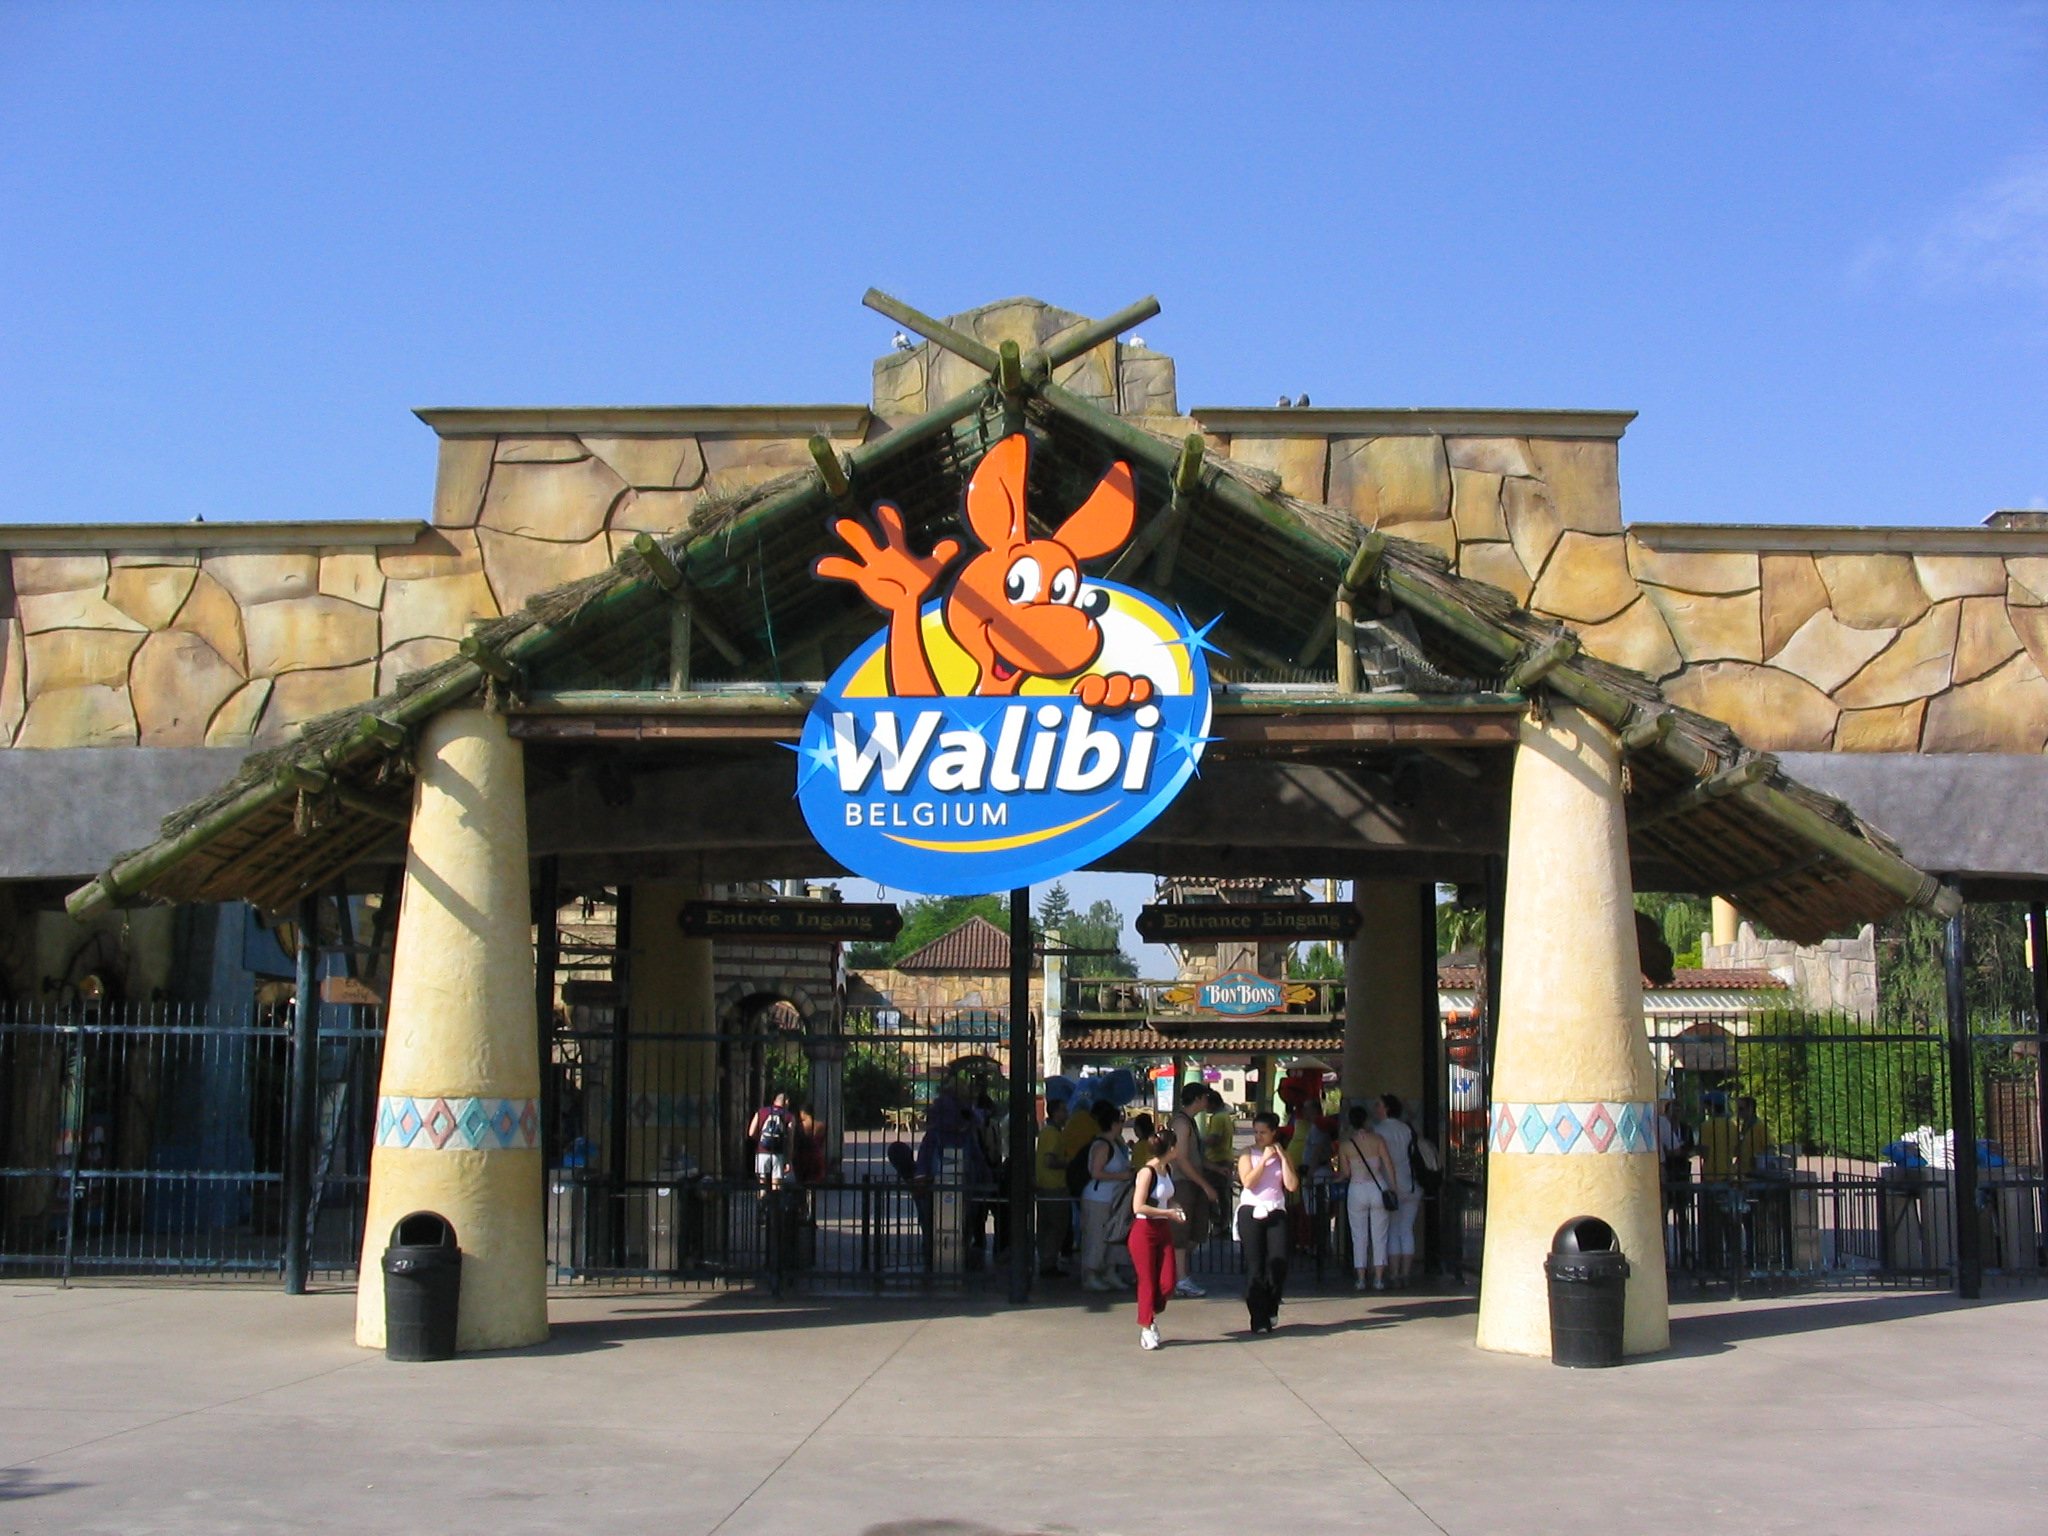 http://upload.wikimedia.org/wikipedia/commons/4/43/WalibiBelgium_Entrance.jpg